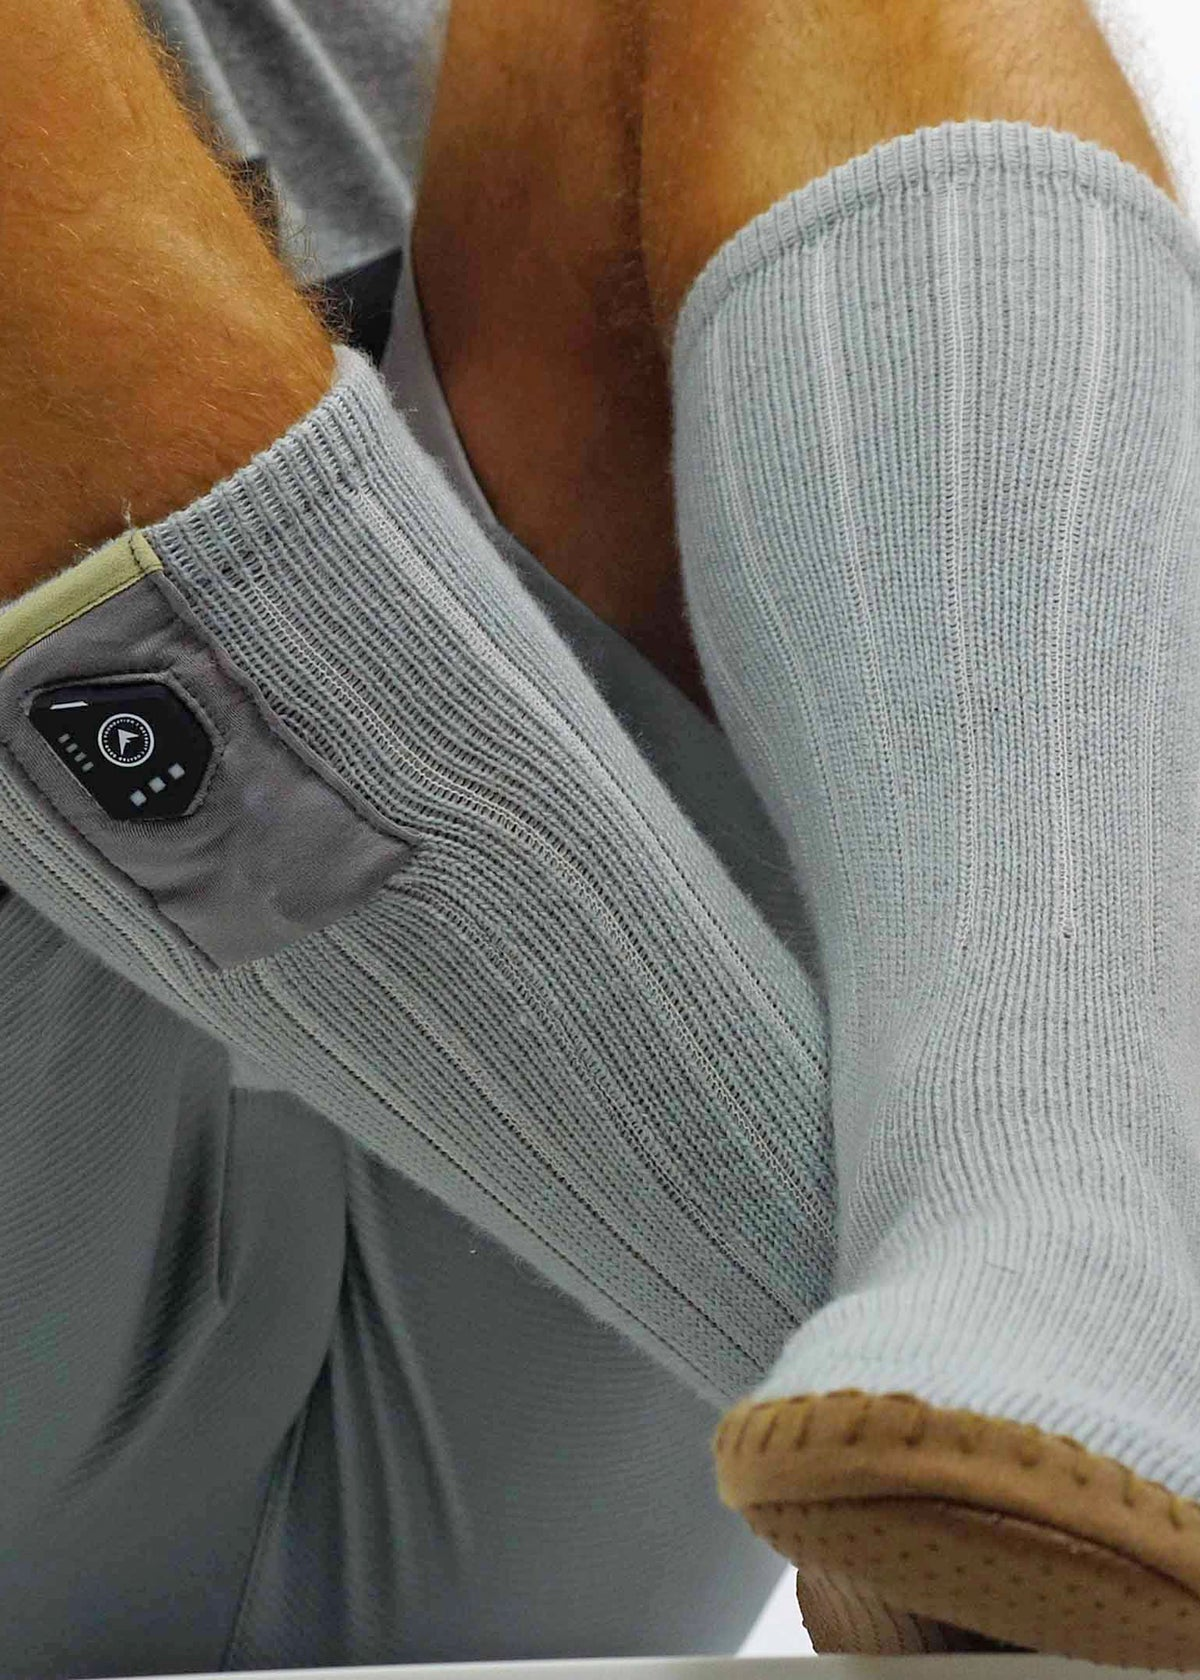 FNDN Heated 3.7V Slipper Socks